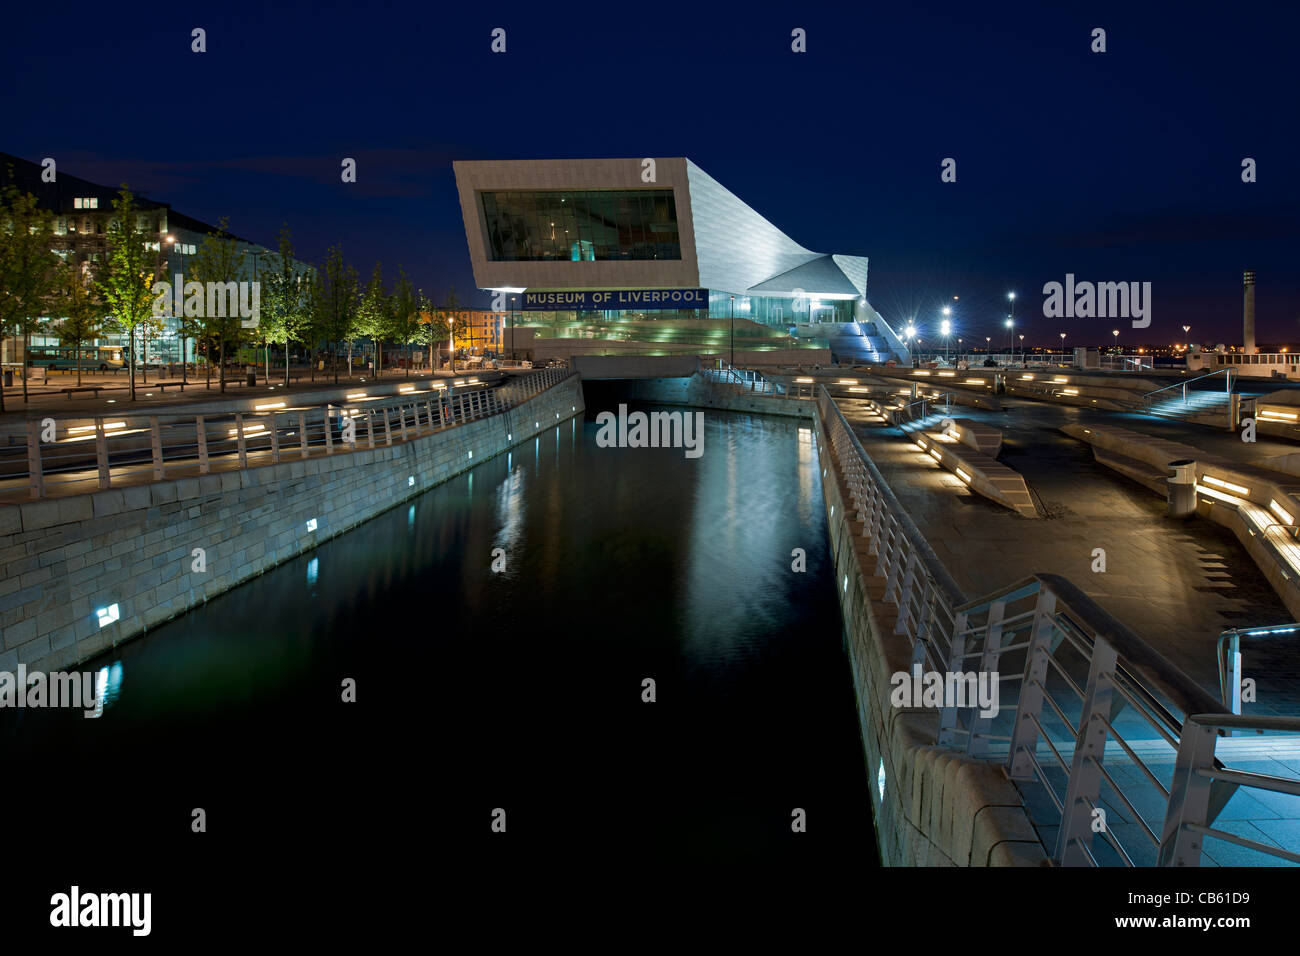 Night view of Museum of Liverpool across the Leeds Liverpool Canal and new public realm at the Pier Head, Liverpool. - Stock Image